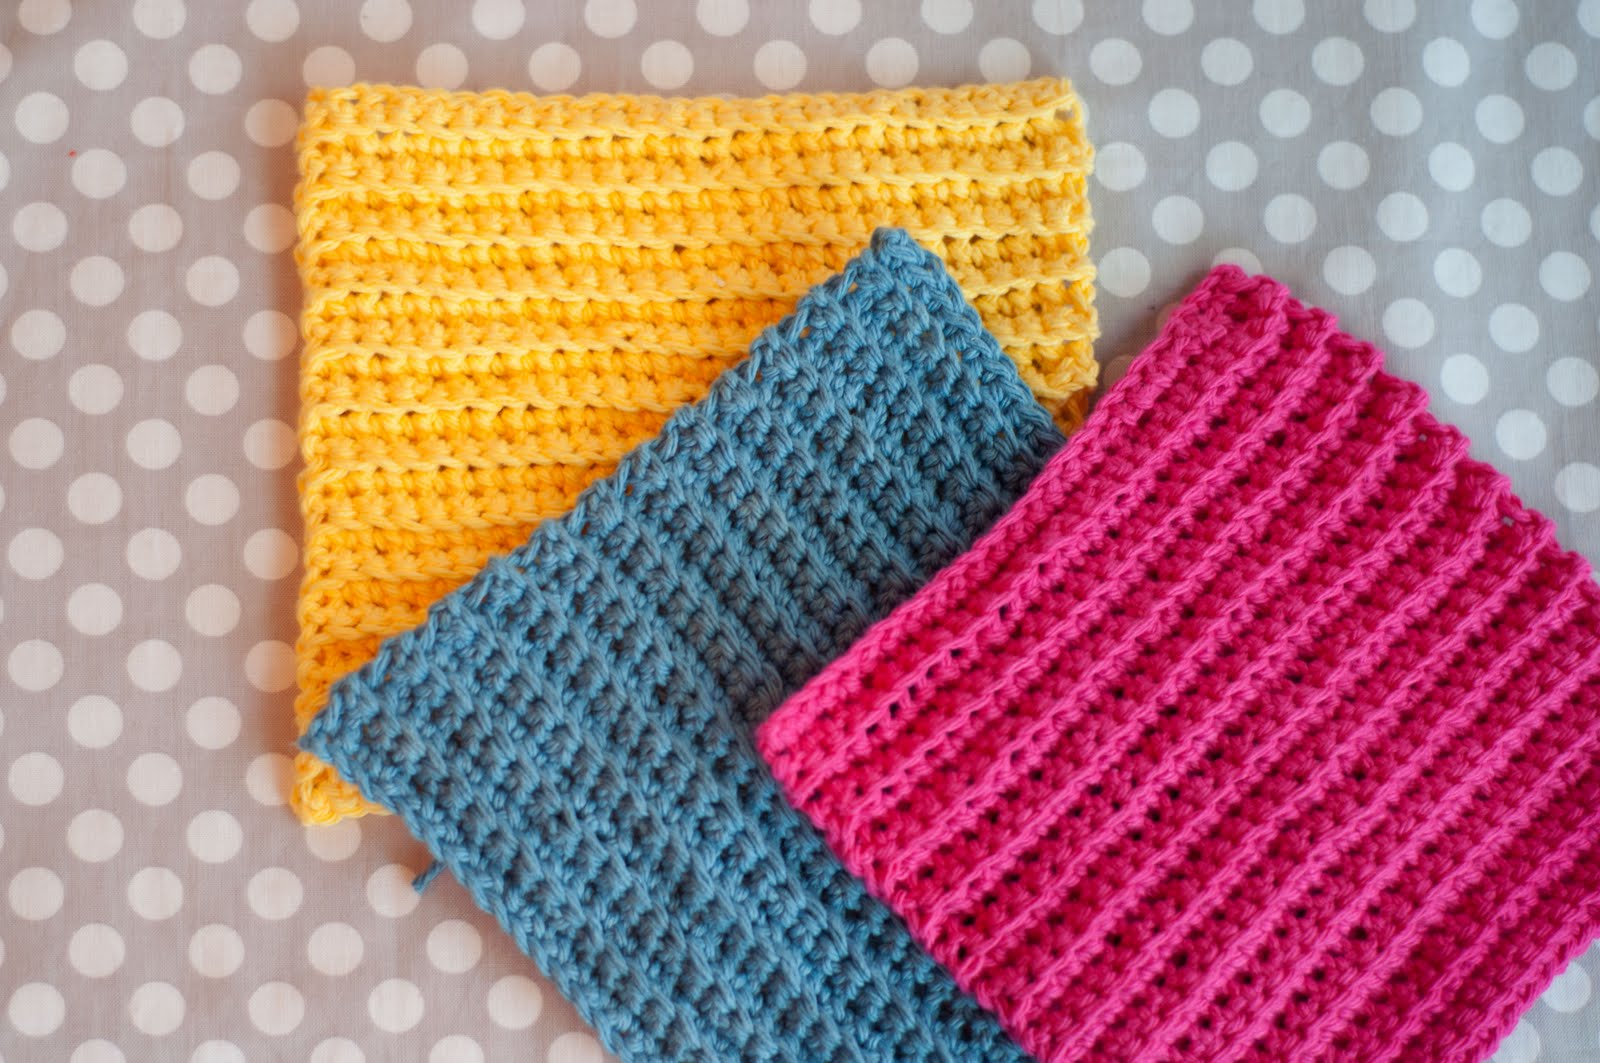 Crochet Stitches Instructions For Beginners : Basic Crochet Stitches: Beginner Ruffled Scarf Pattern Tip Junkie